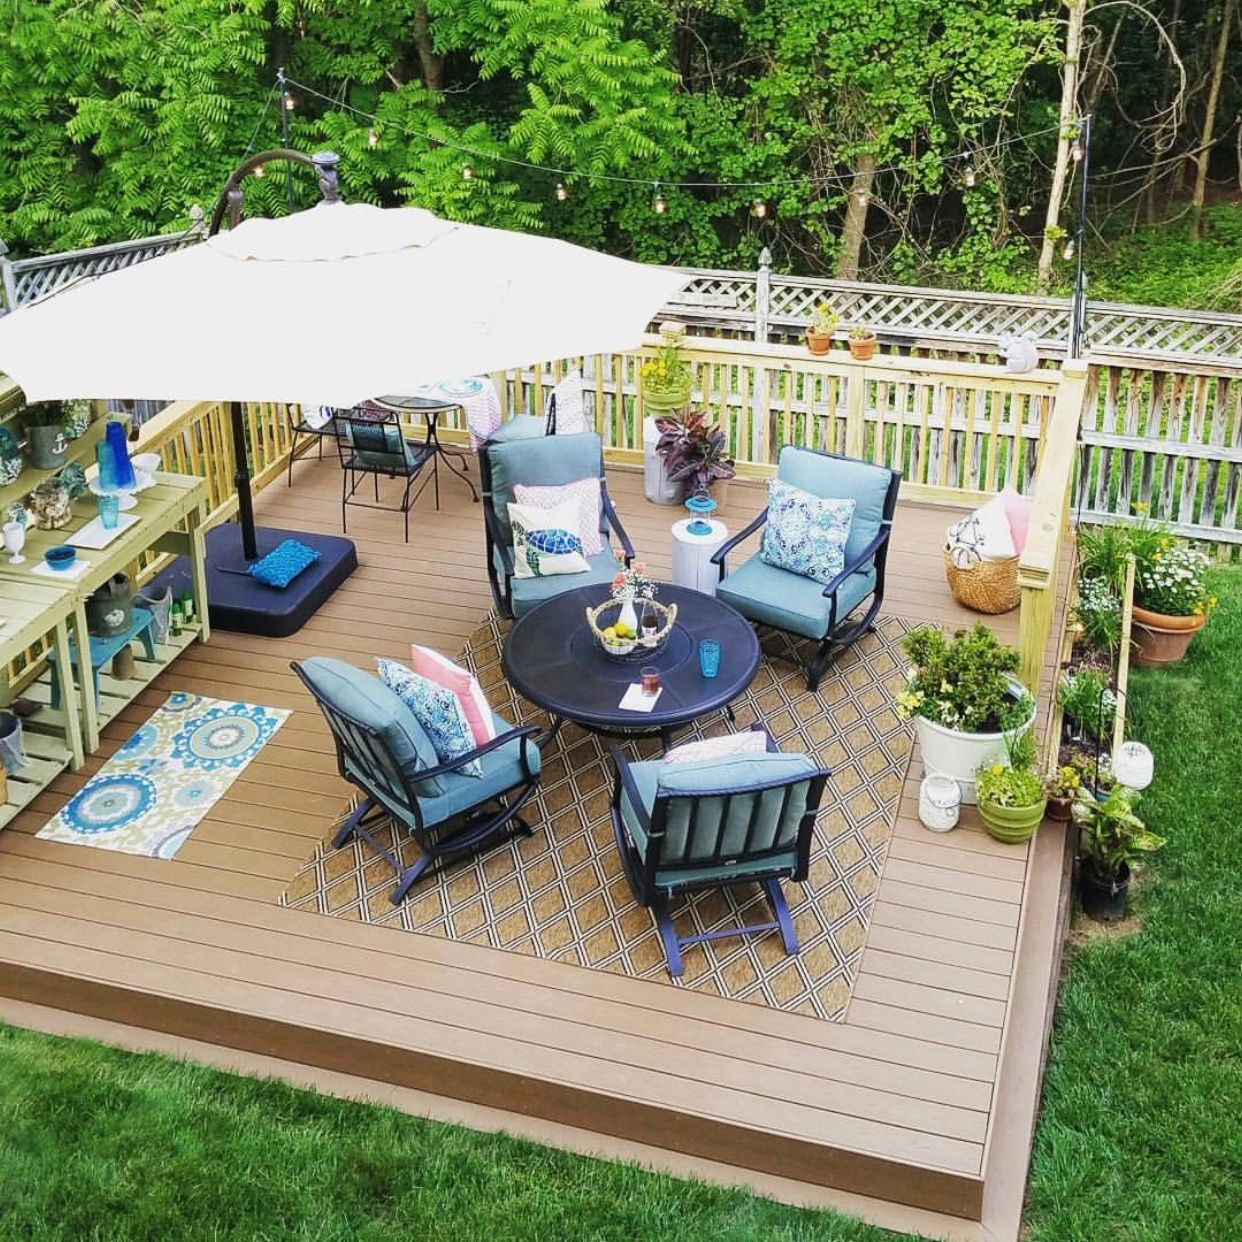 Floating Deck Design Ideas Floating Deck Decks Backyard Deck Decorating